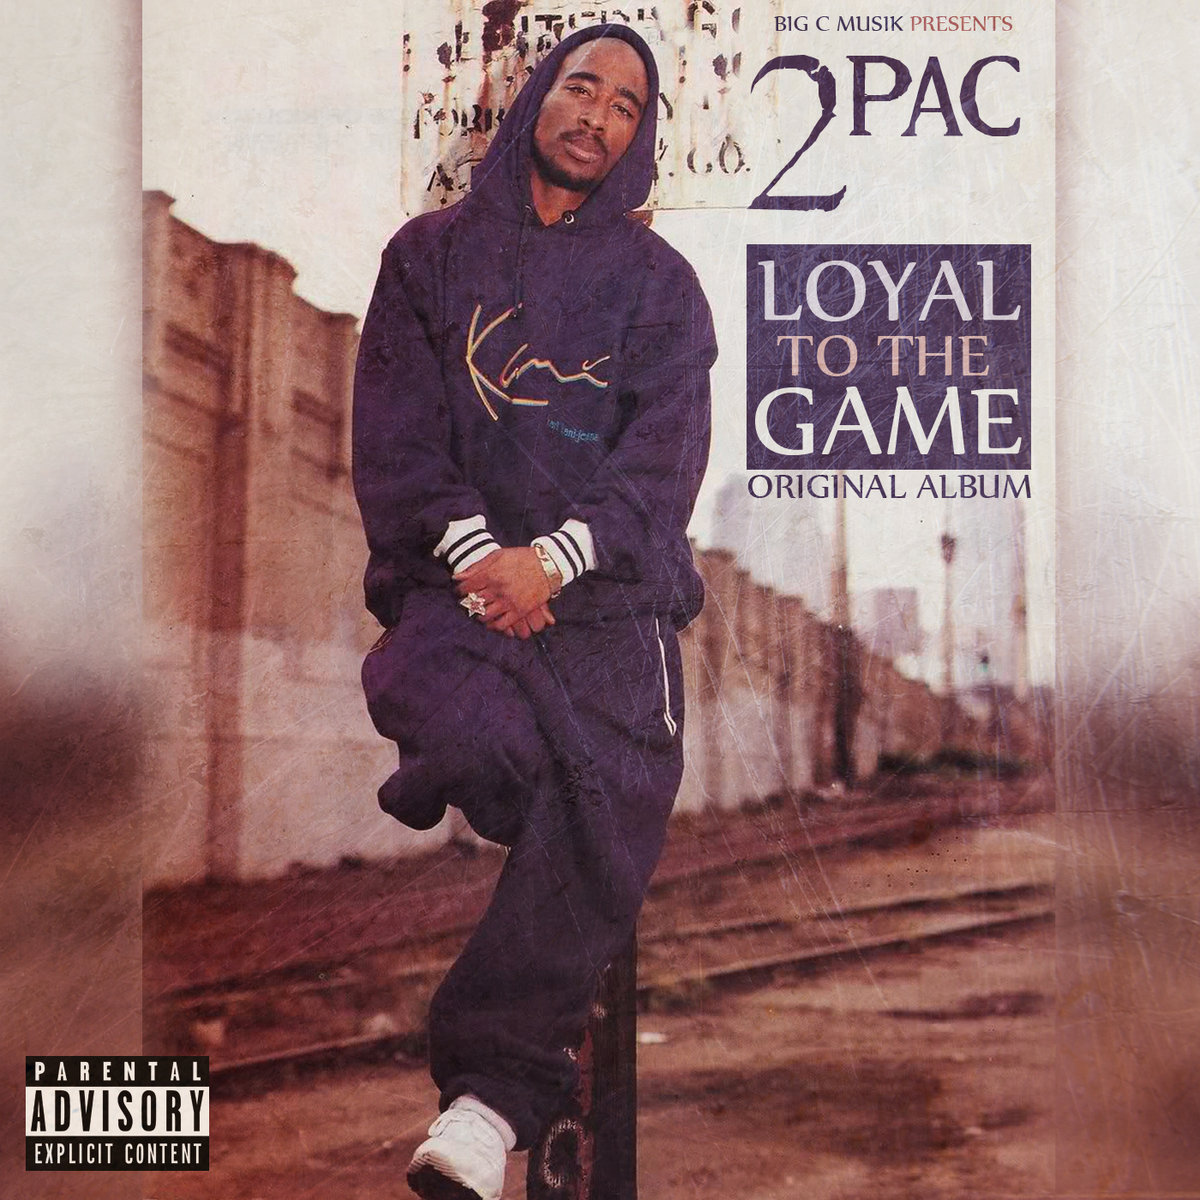 2Pac - Loyal To The Game (Original Album) | enlivedufer